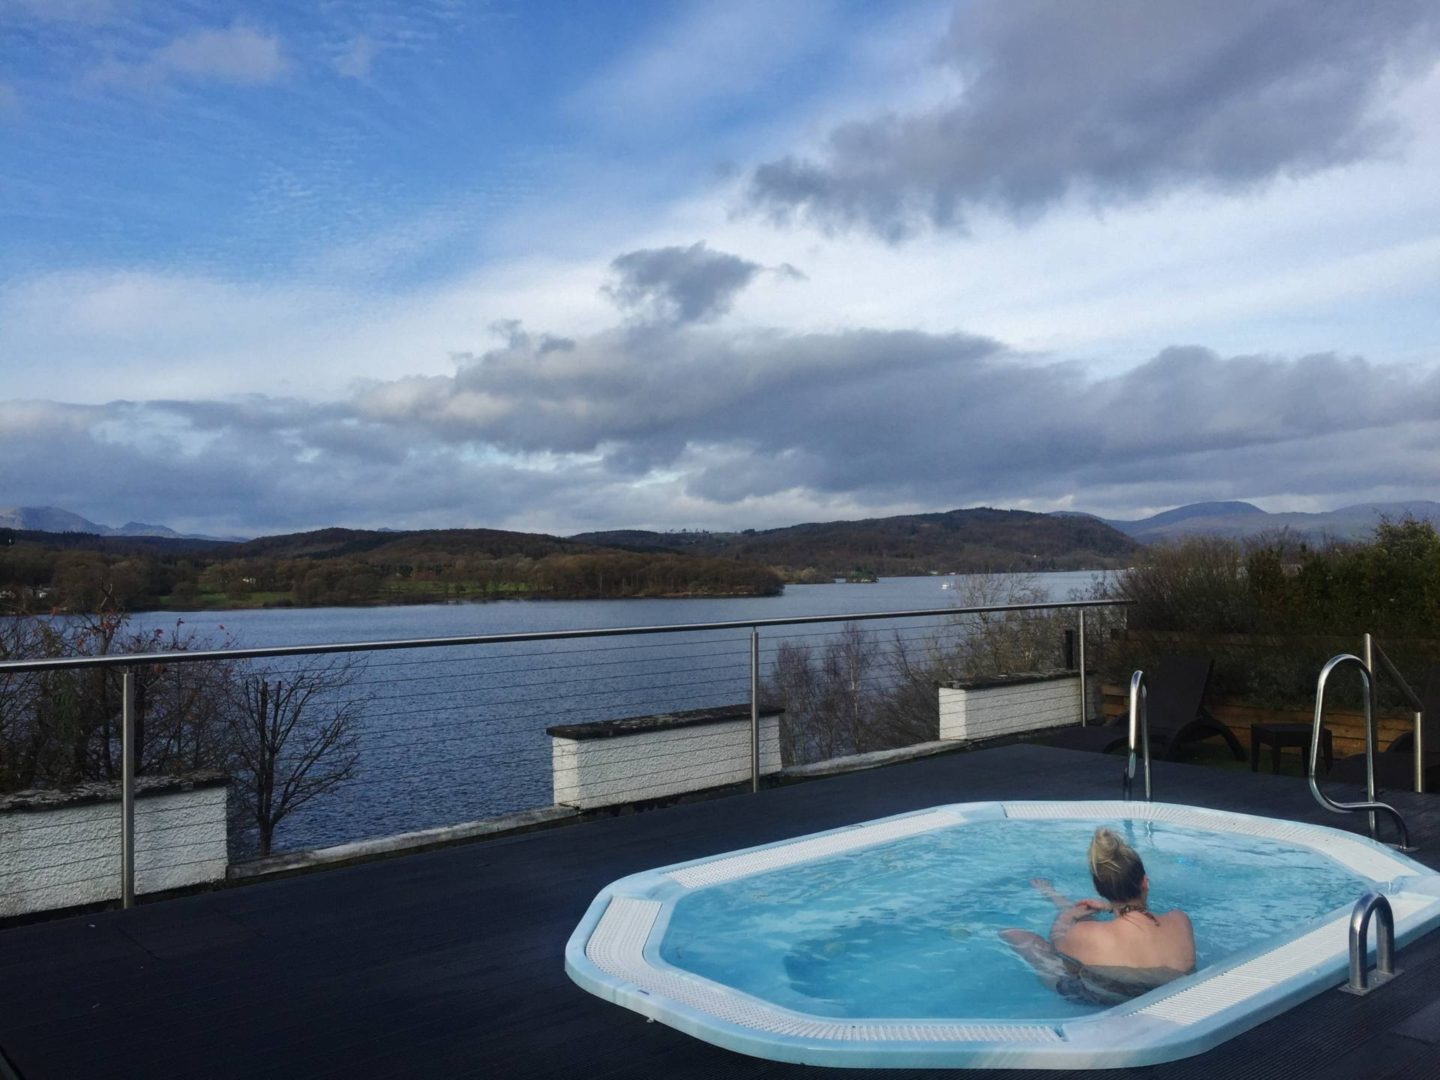 Emma Victoria Stokes Beech Hill Hotel And Spa Lakeview Windermere Hot Tub Scented Garden